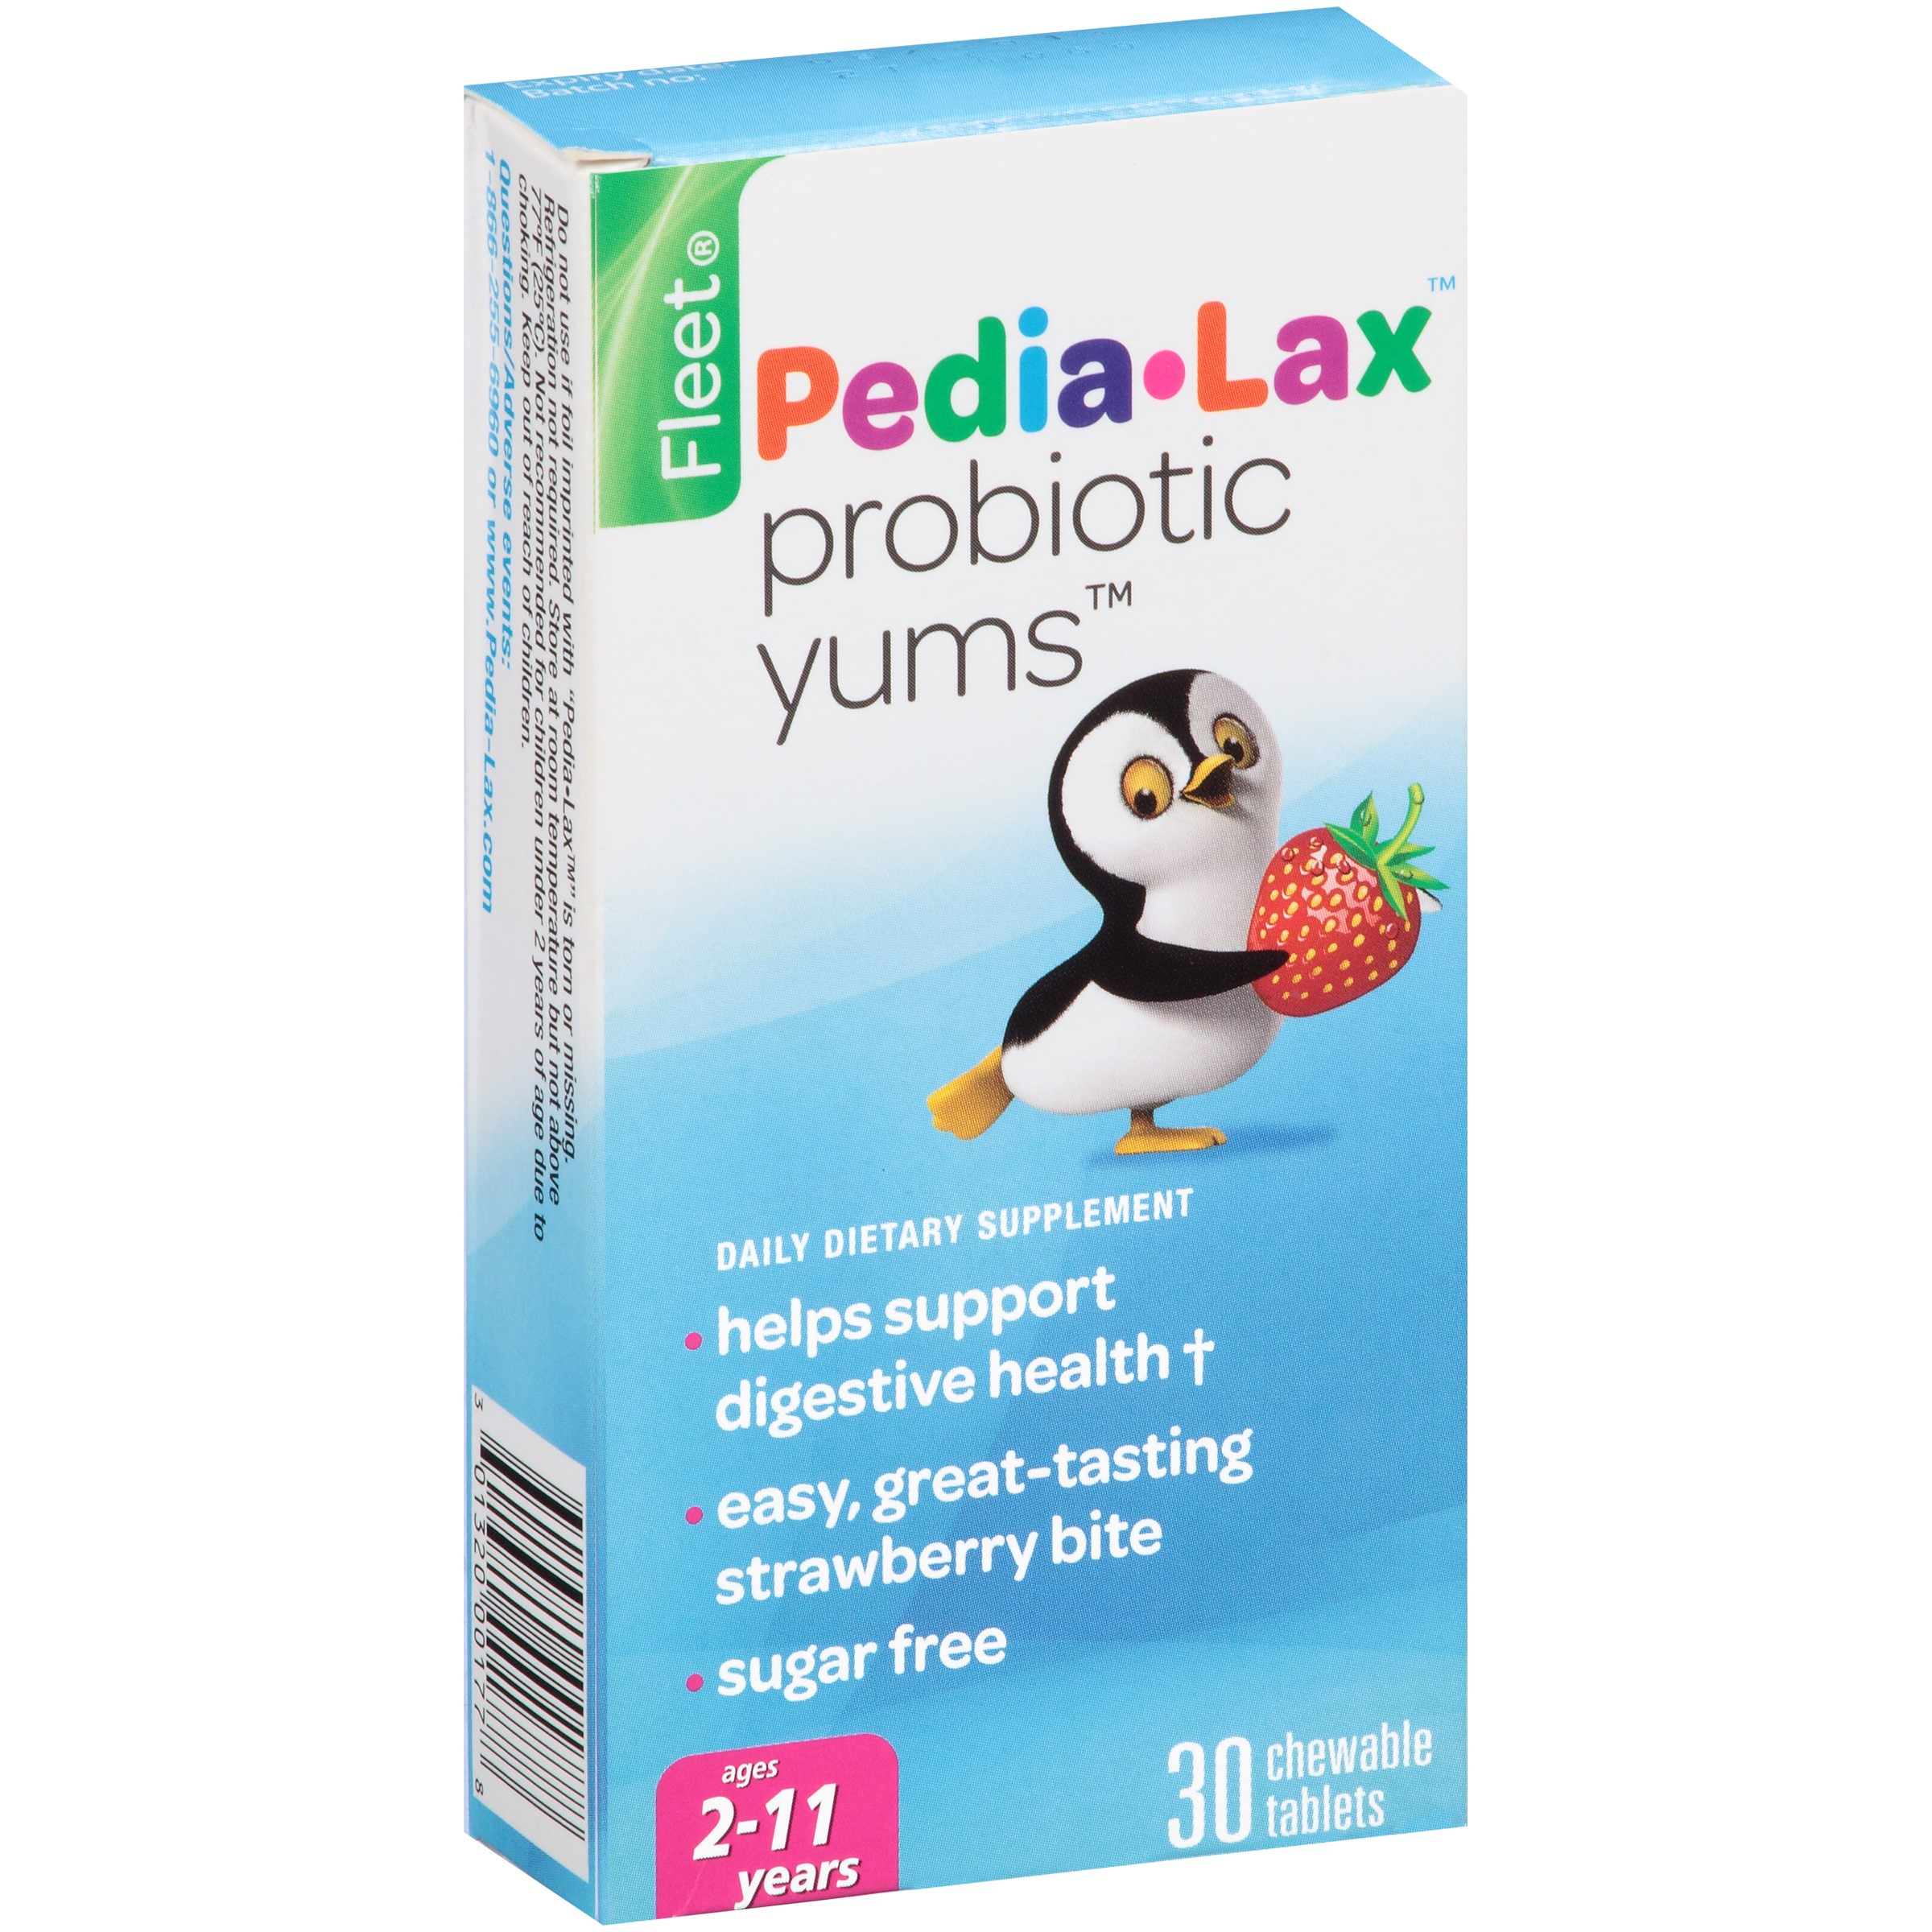 Pedia-lax Fleet Pedia-Lax Probiotic Yums, 30 Ct